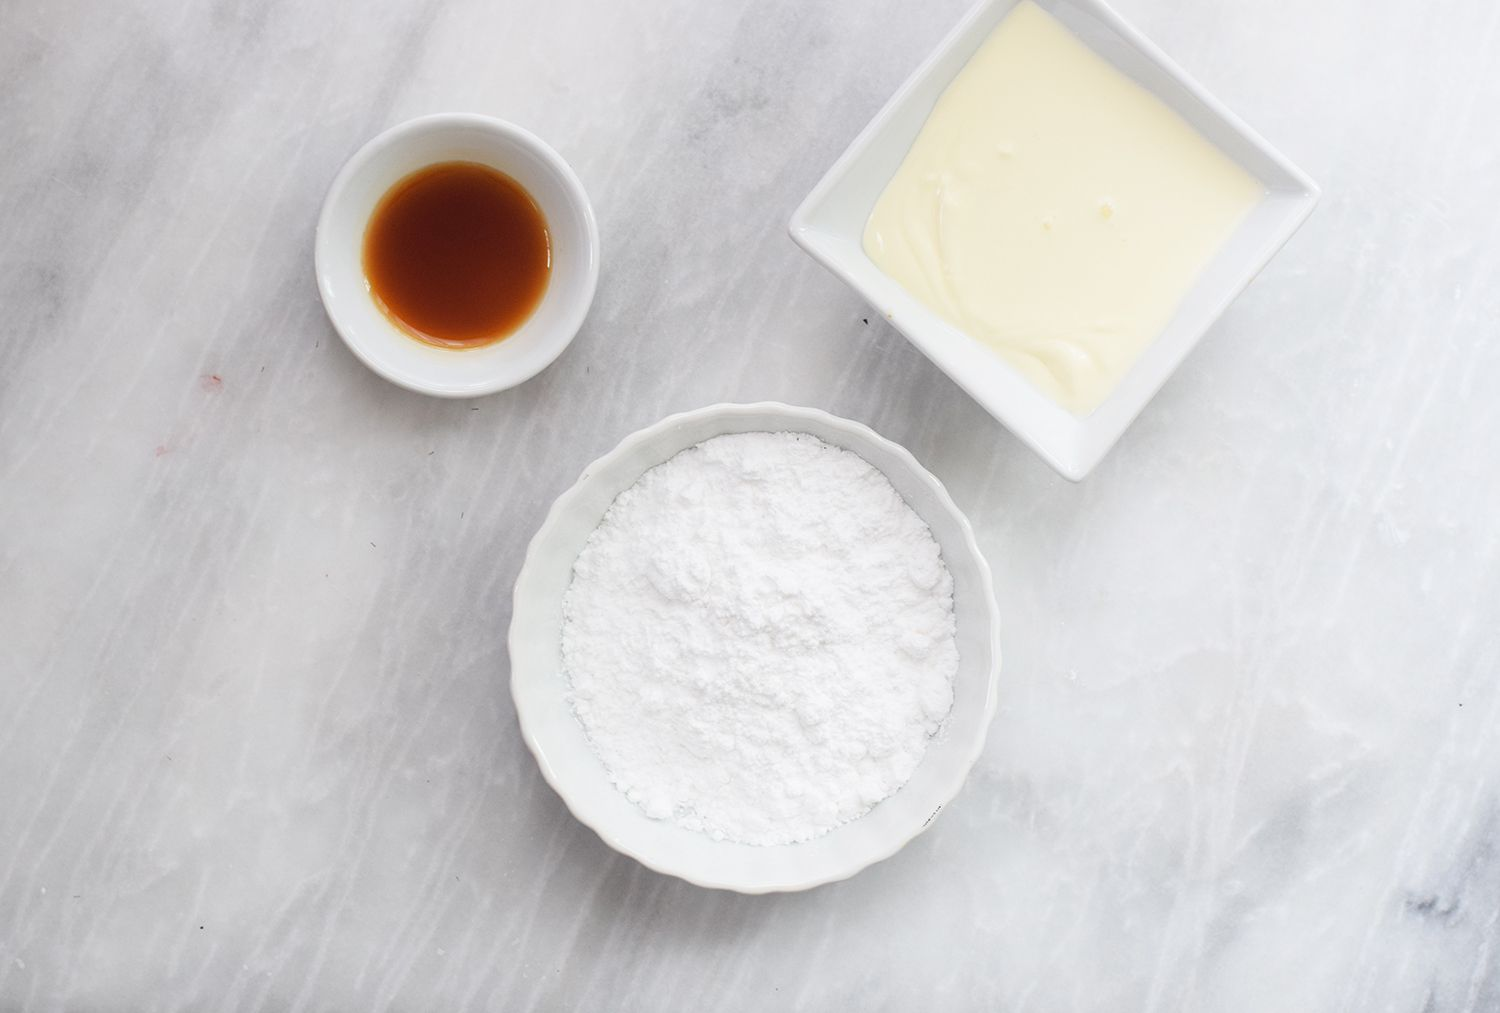 gather whipped cream ingredients